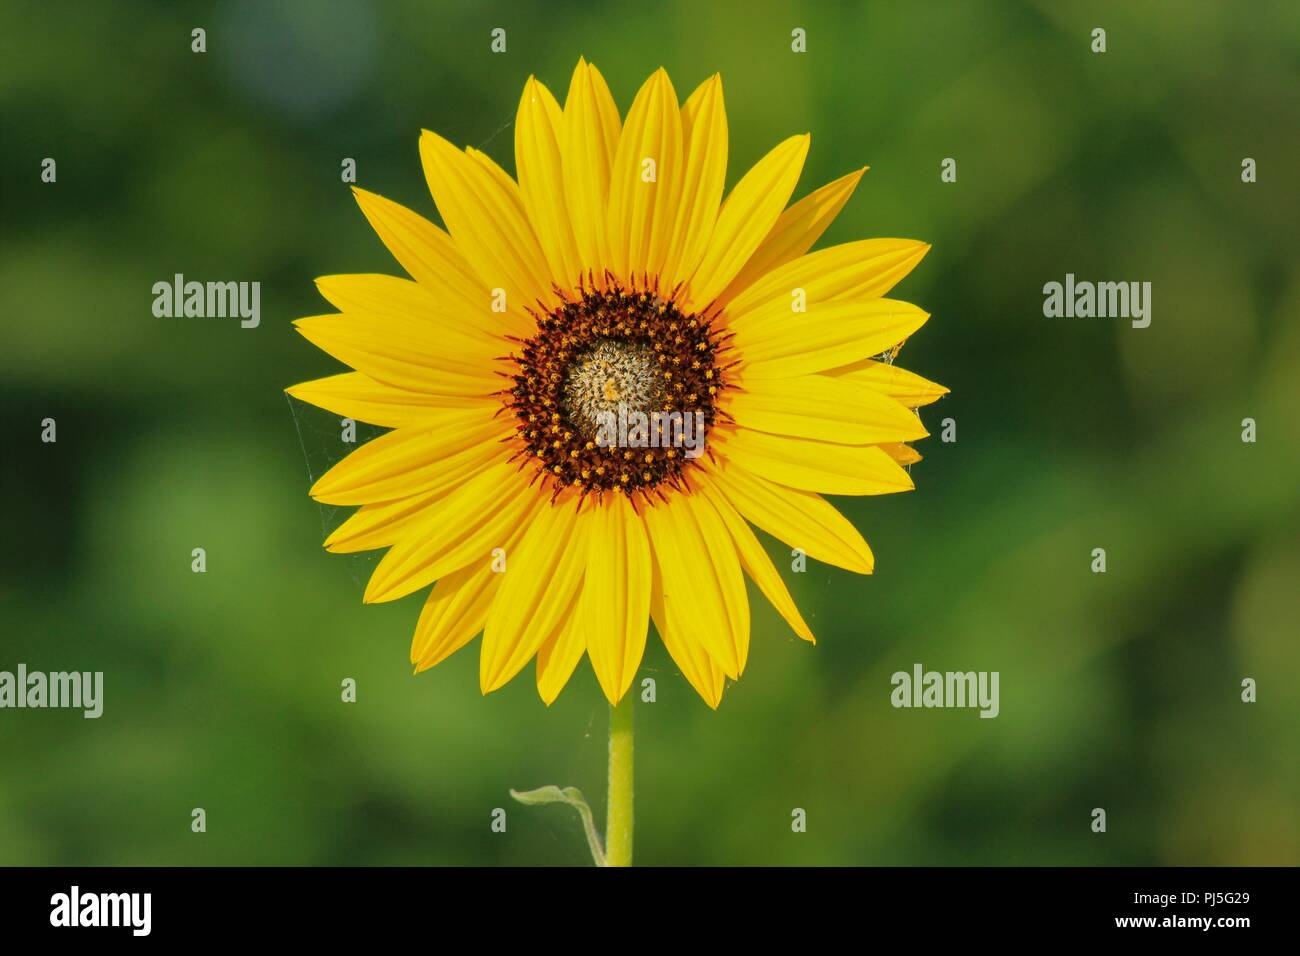 Colorful Wild Sunflower shot closeup with a green back ground in Kansas. - Stock Image